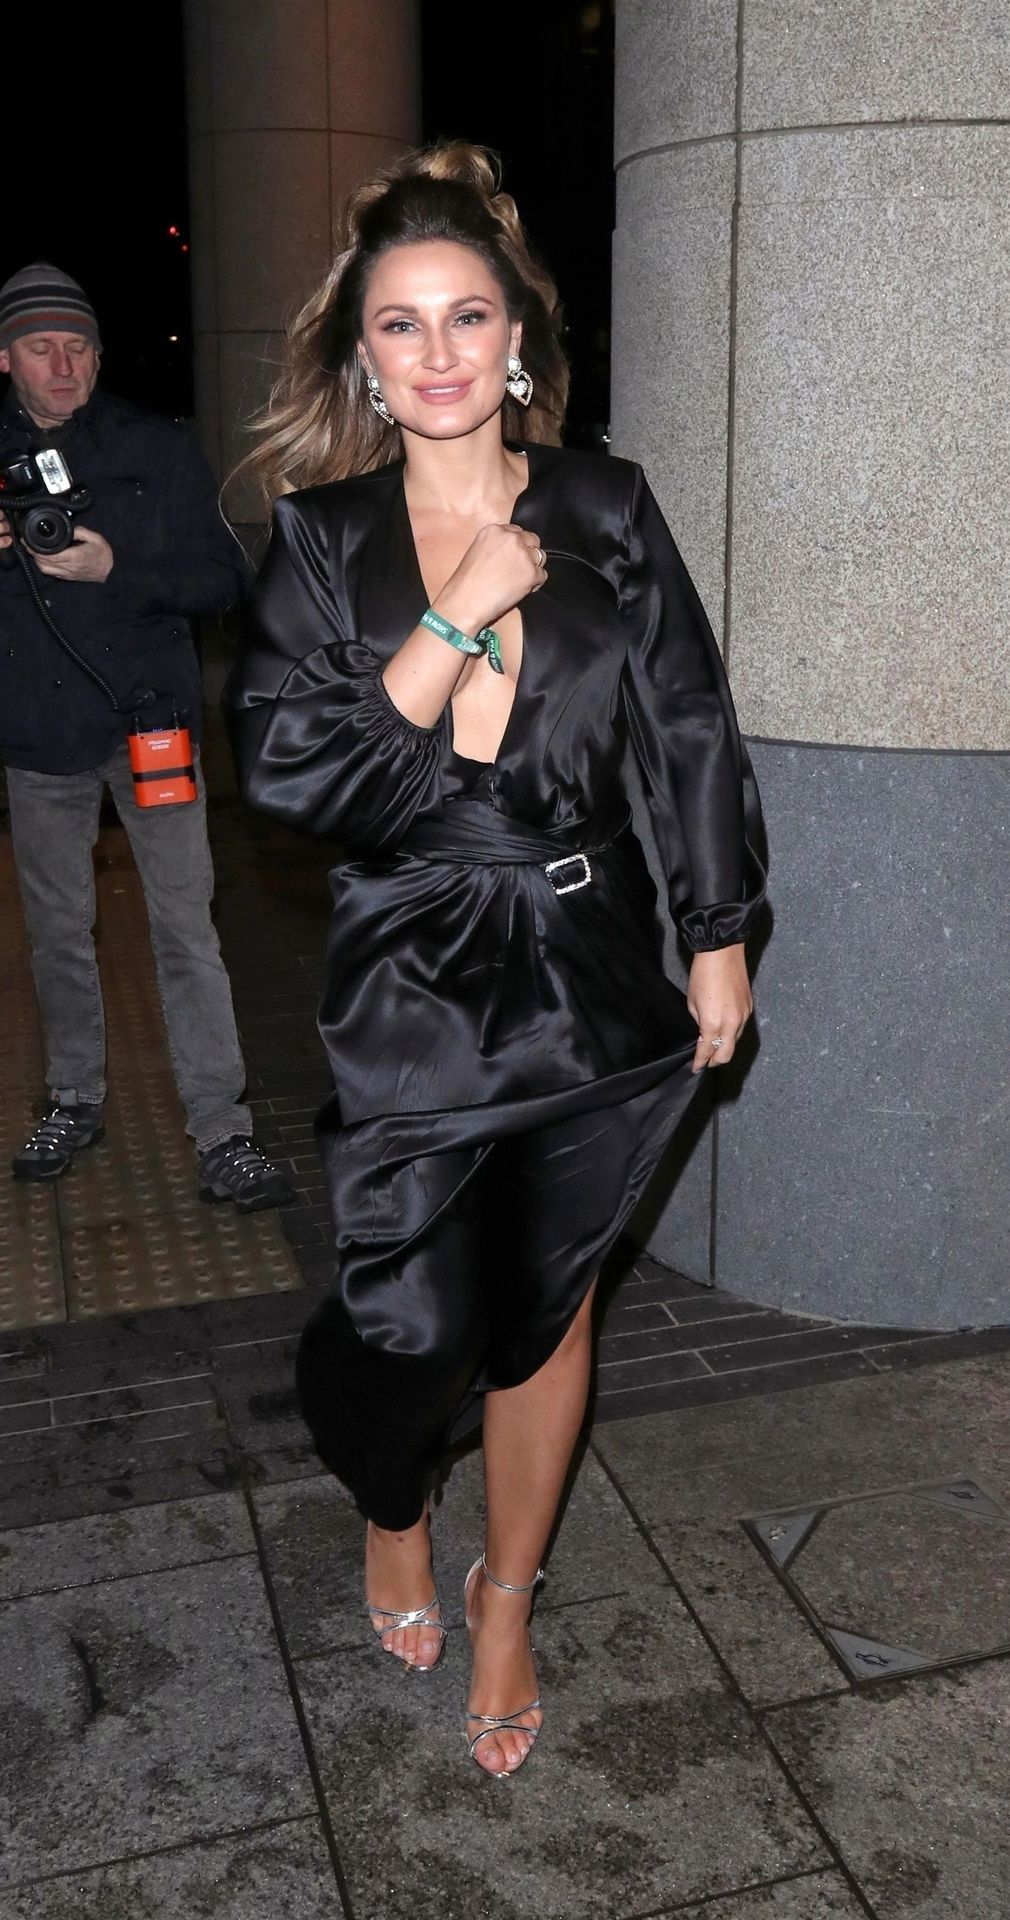 Sam Faiers Gets Leggy at The BRIT Awards Afterparty (12 Photos)